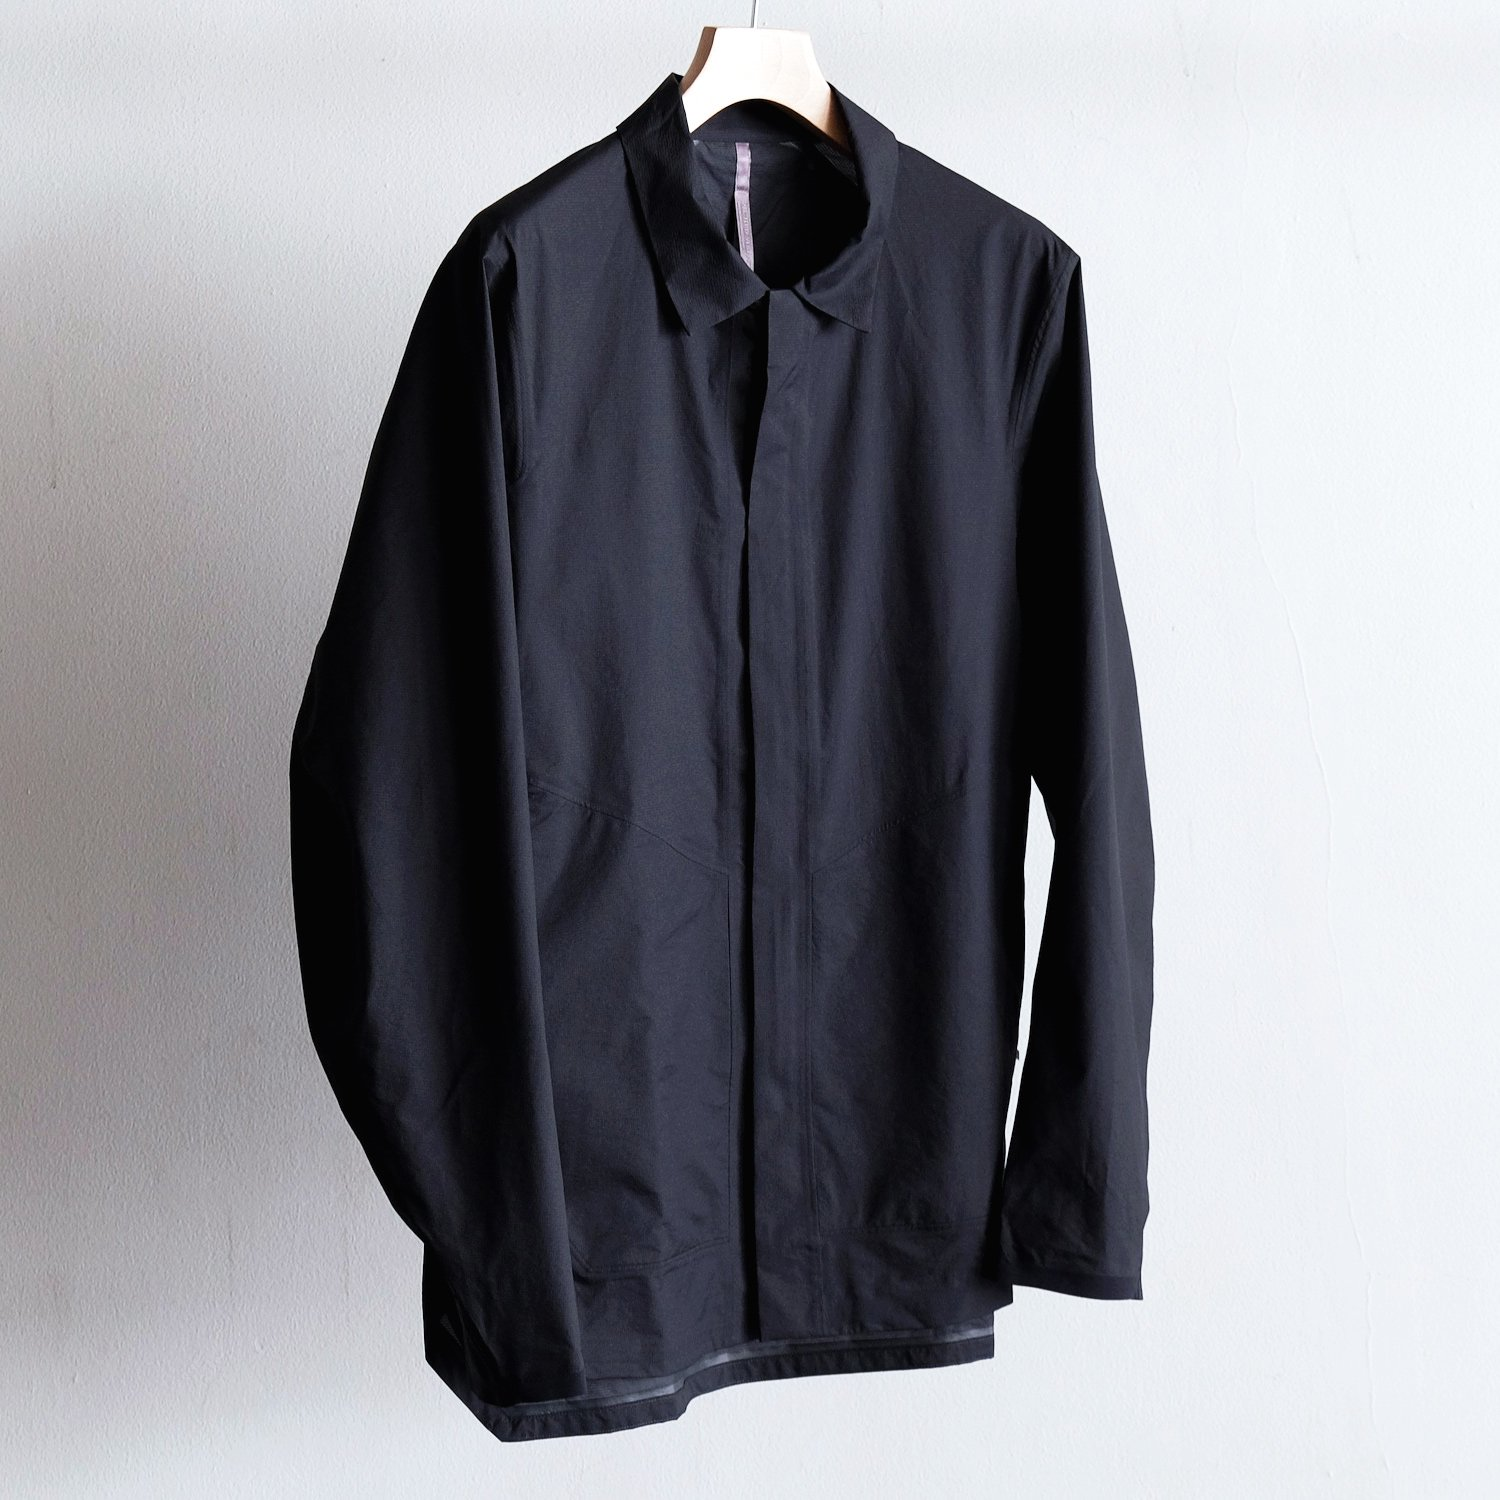 DEMLO SL SHIRT JACKET [BLACK]